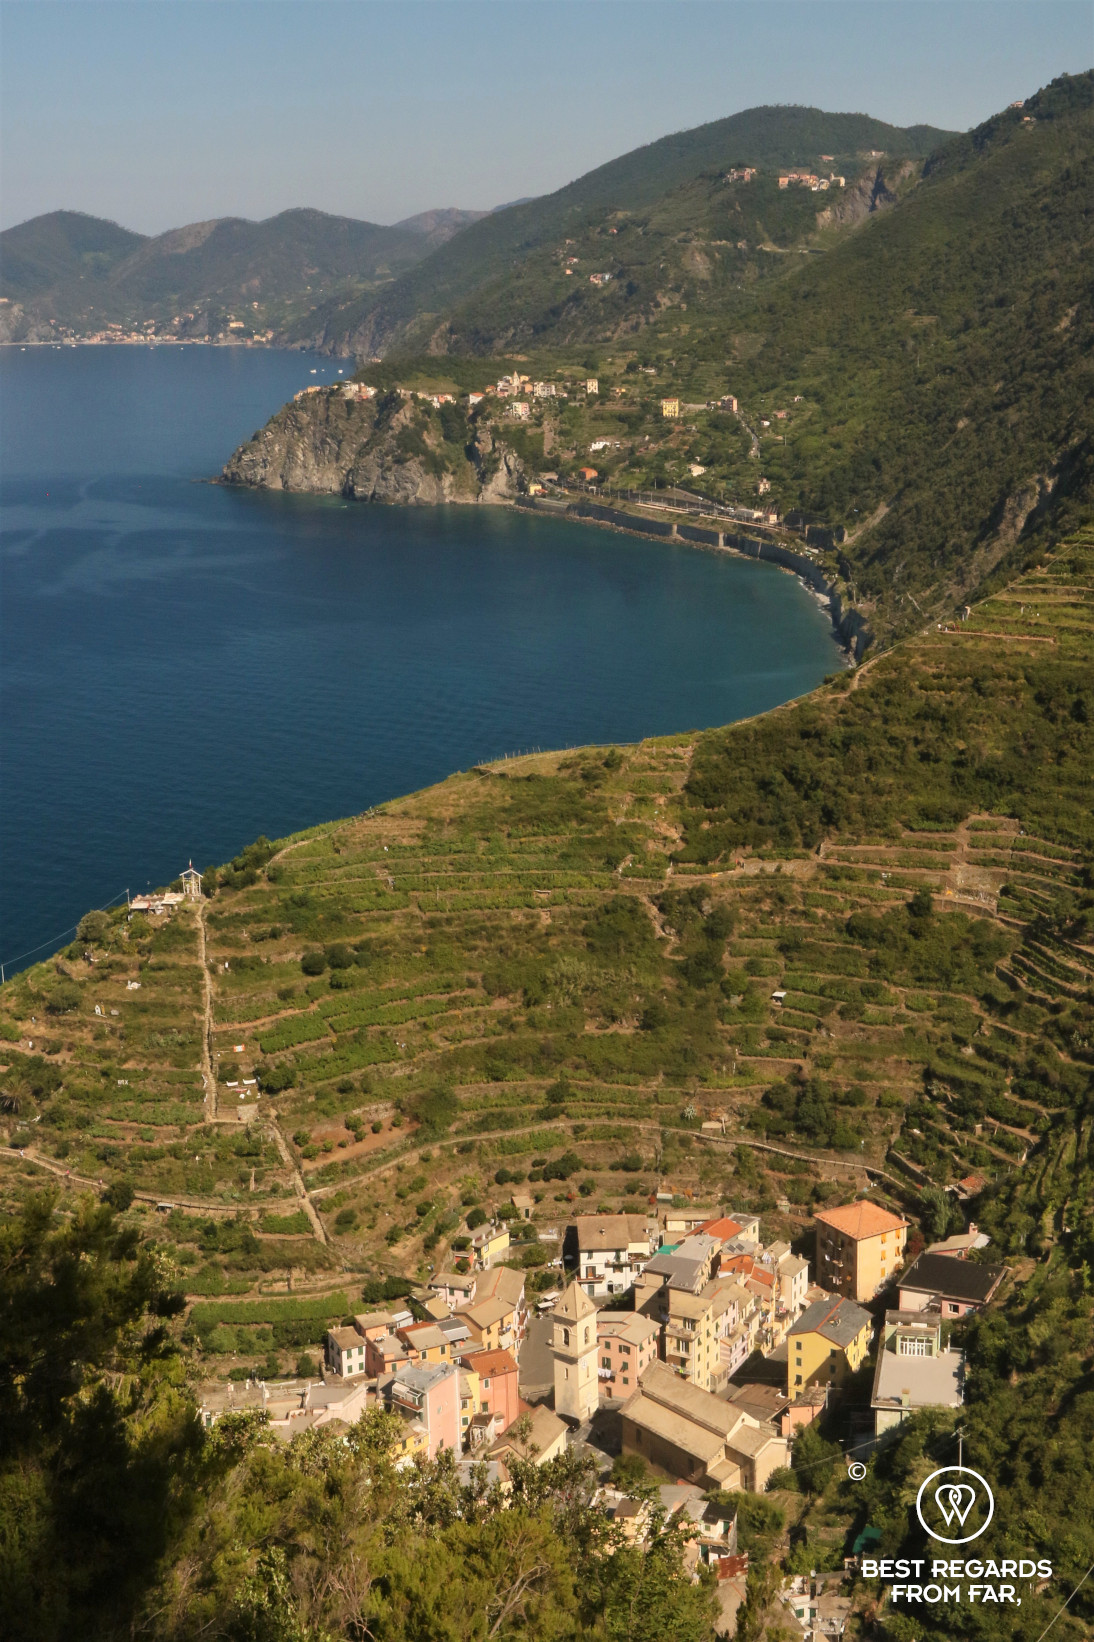 Stunning view on the sea, the amphitheater of terraced vineyards and the city of Manerola in Cinque Terre, Italy